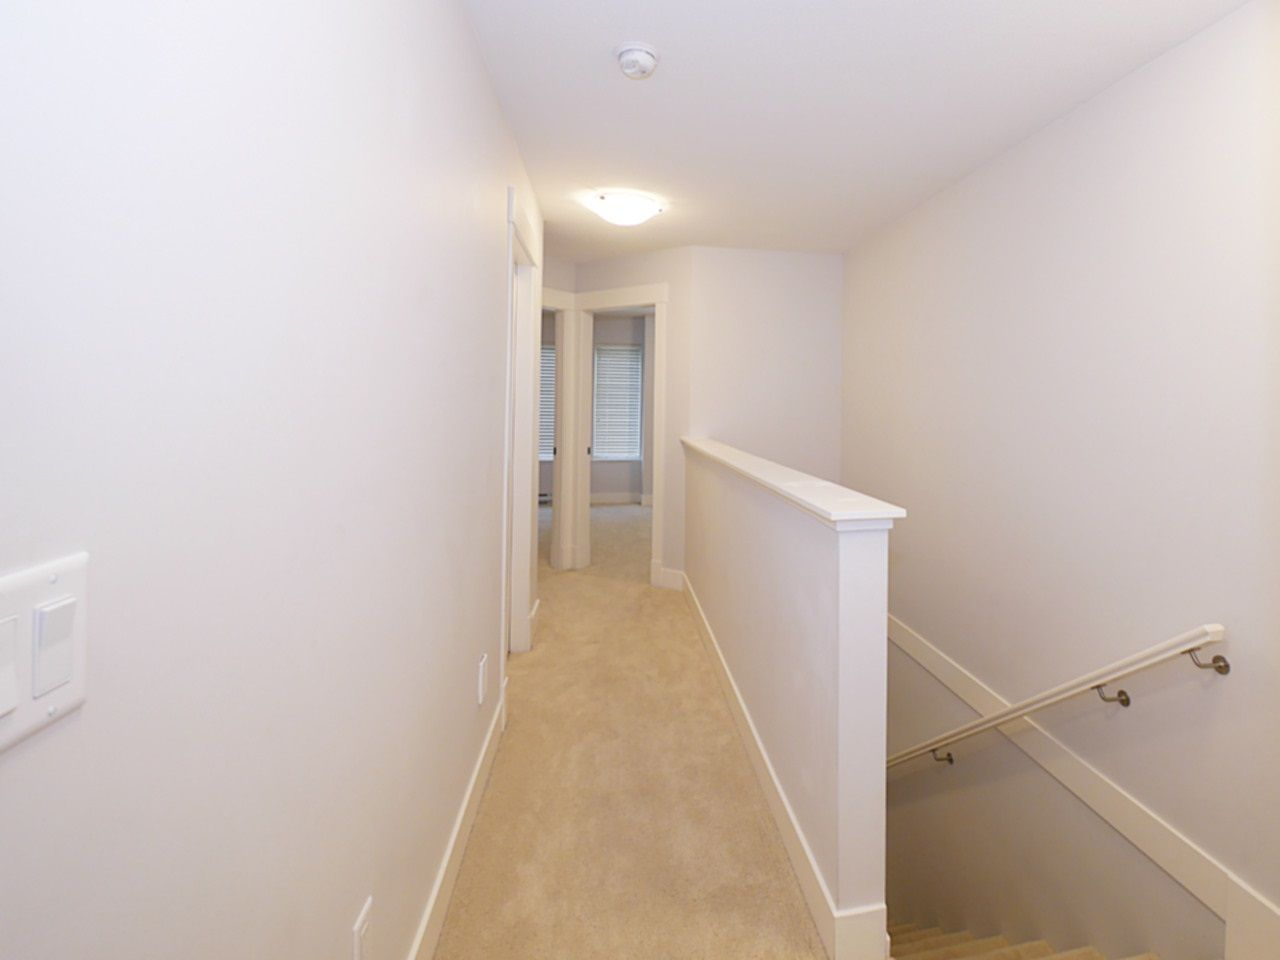 """Photo 12: Photos: 36 19525 73 Avenue in Surrey: Clayton Townhouse for sale in """"Uptown Clayton"""" (Cloverdale)  : MLS®# R2069814"""